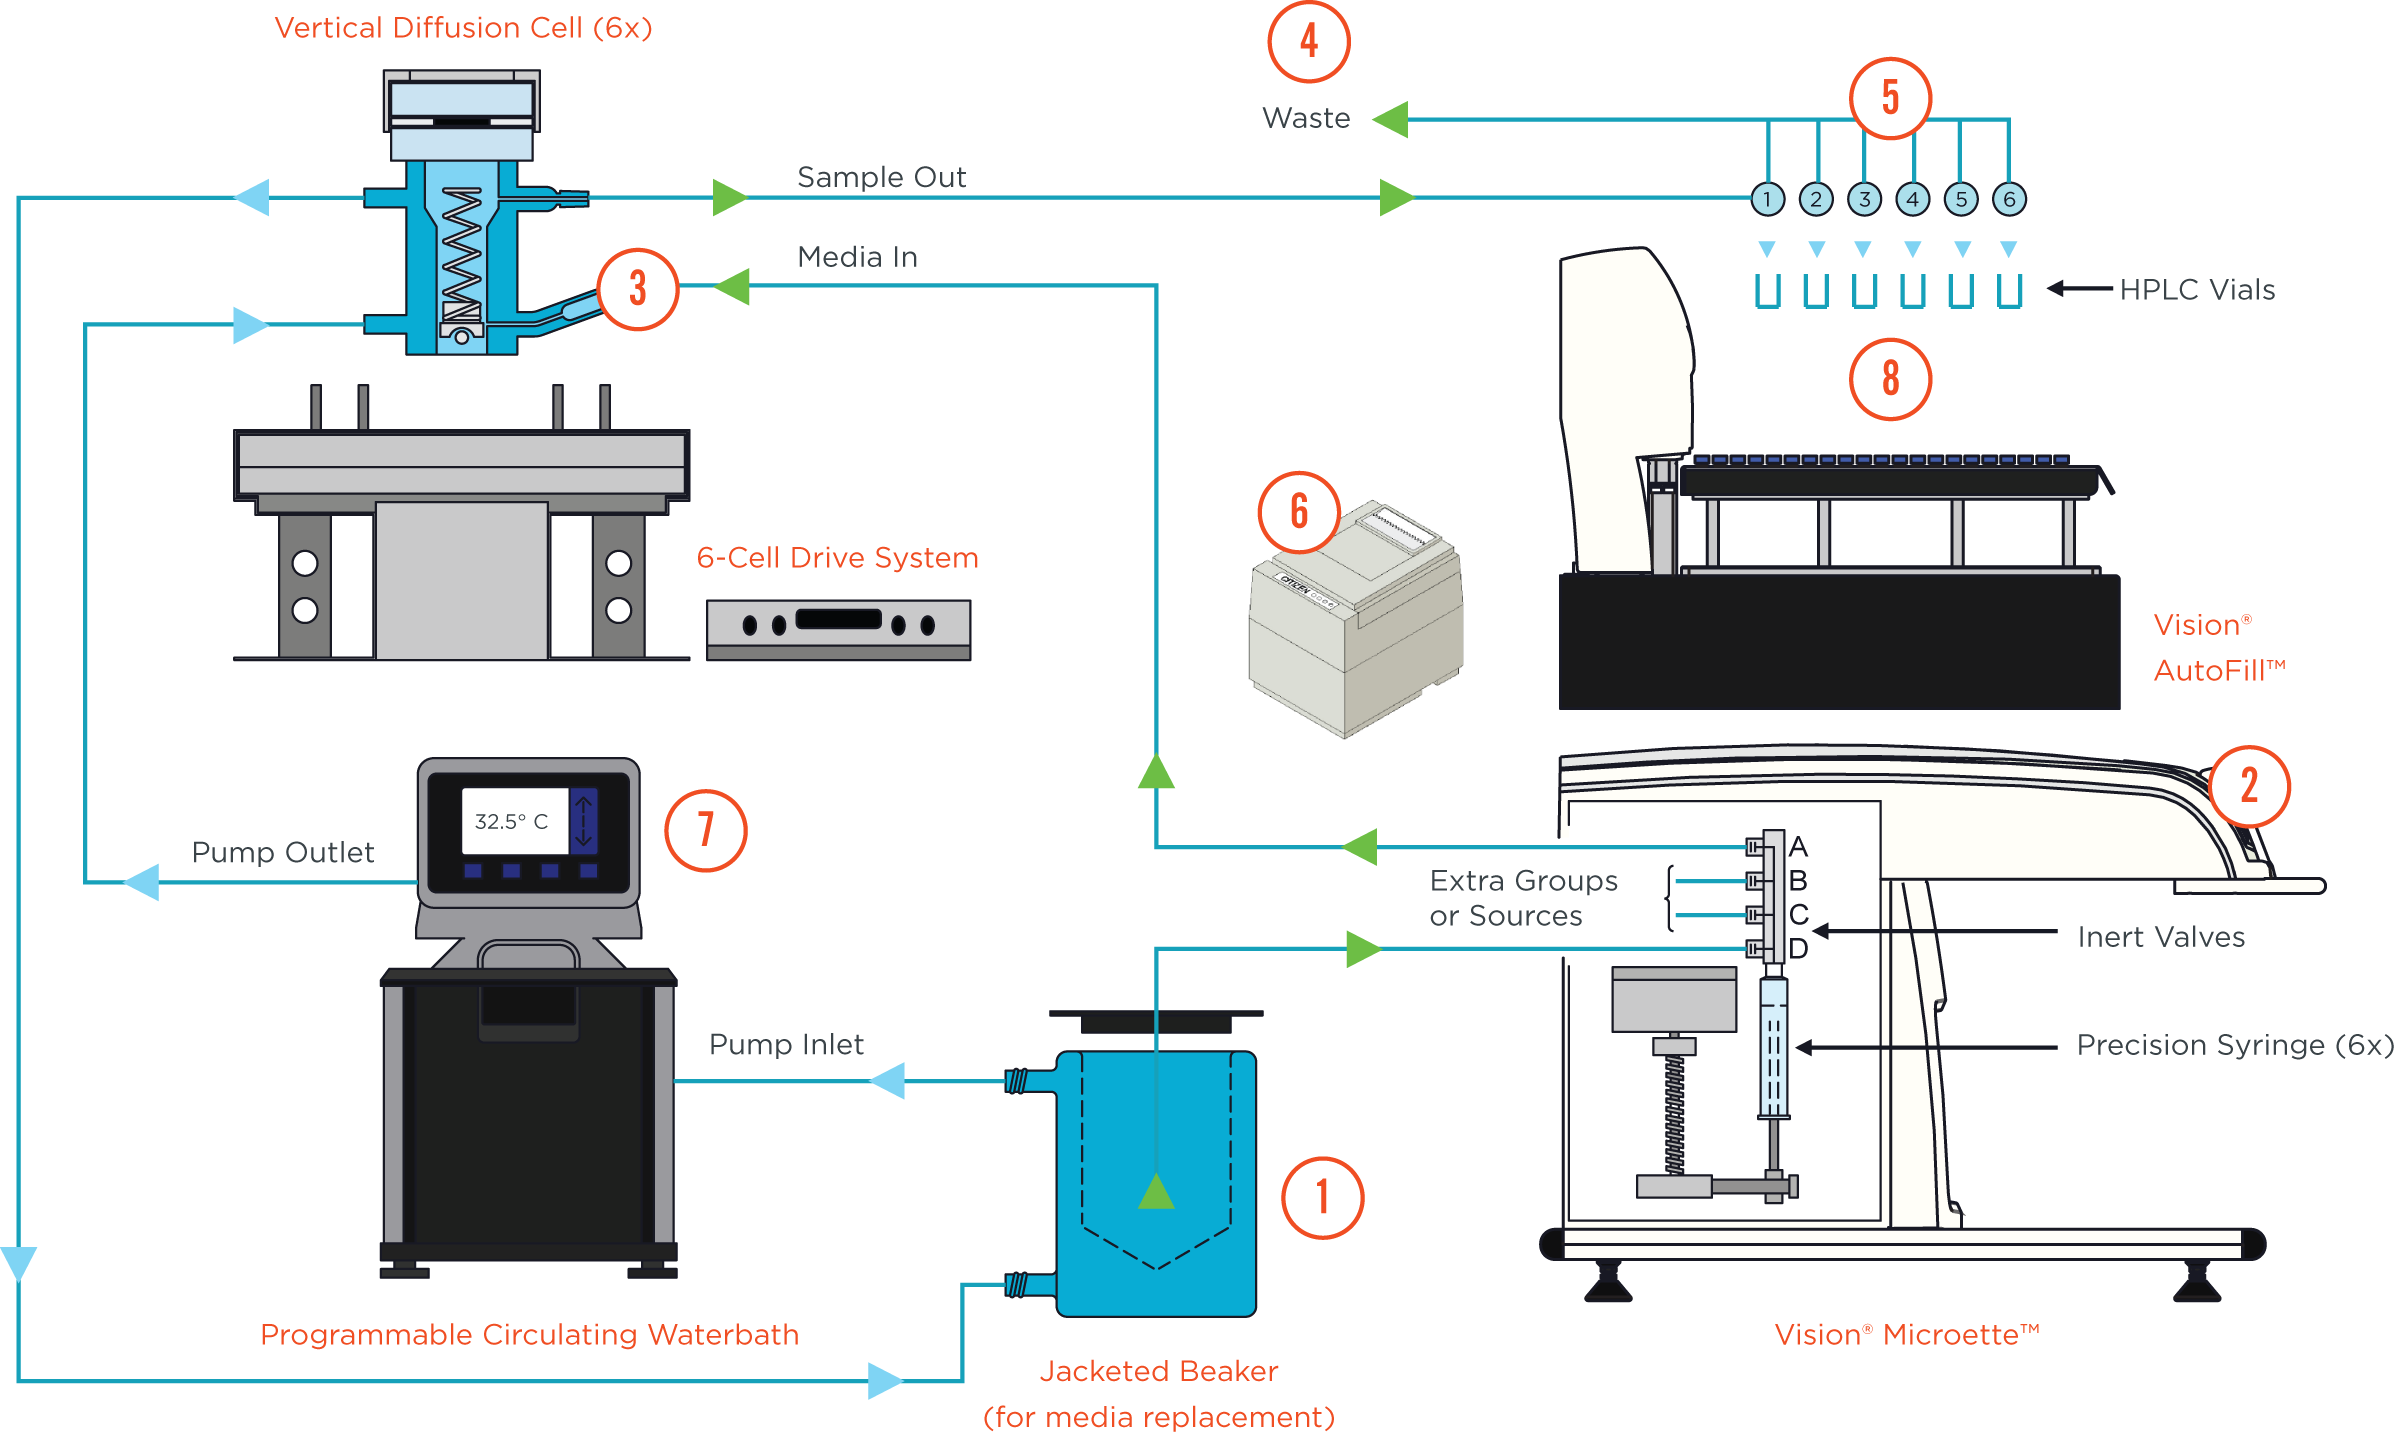 How the Automated Diffusion Test System Works